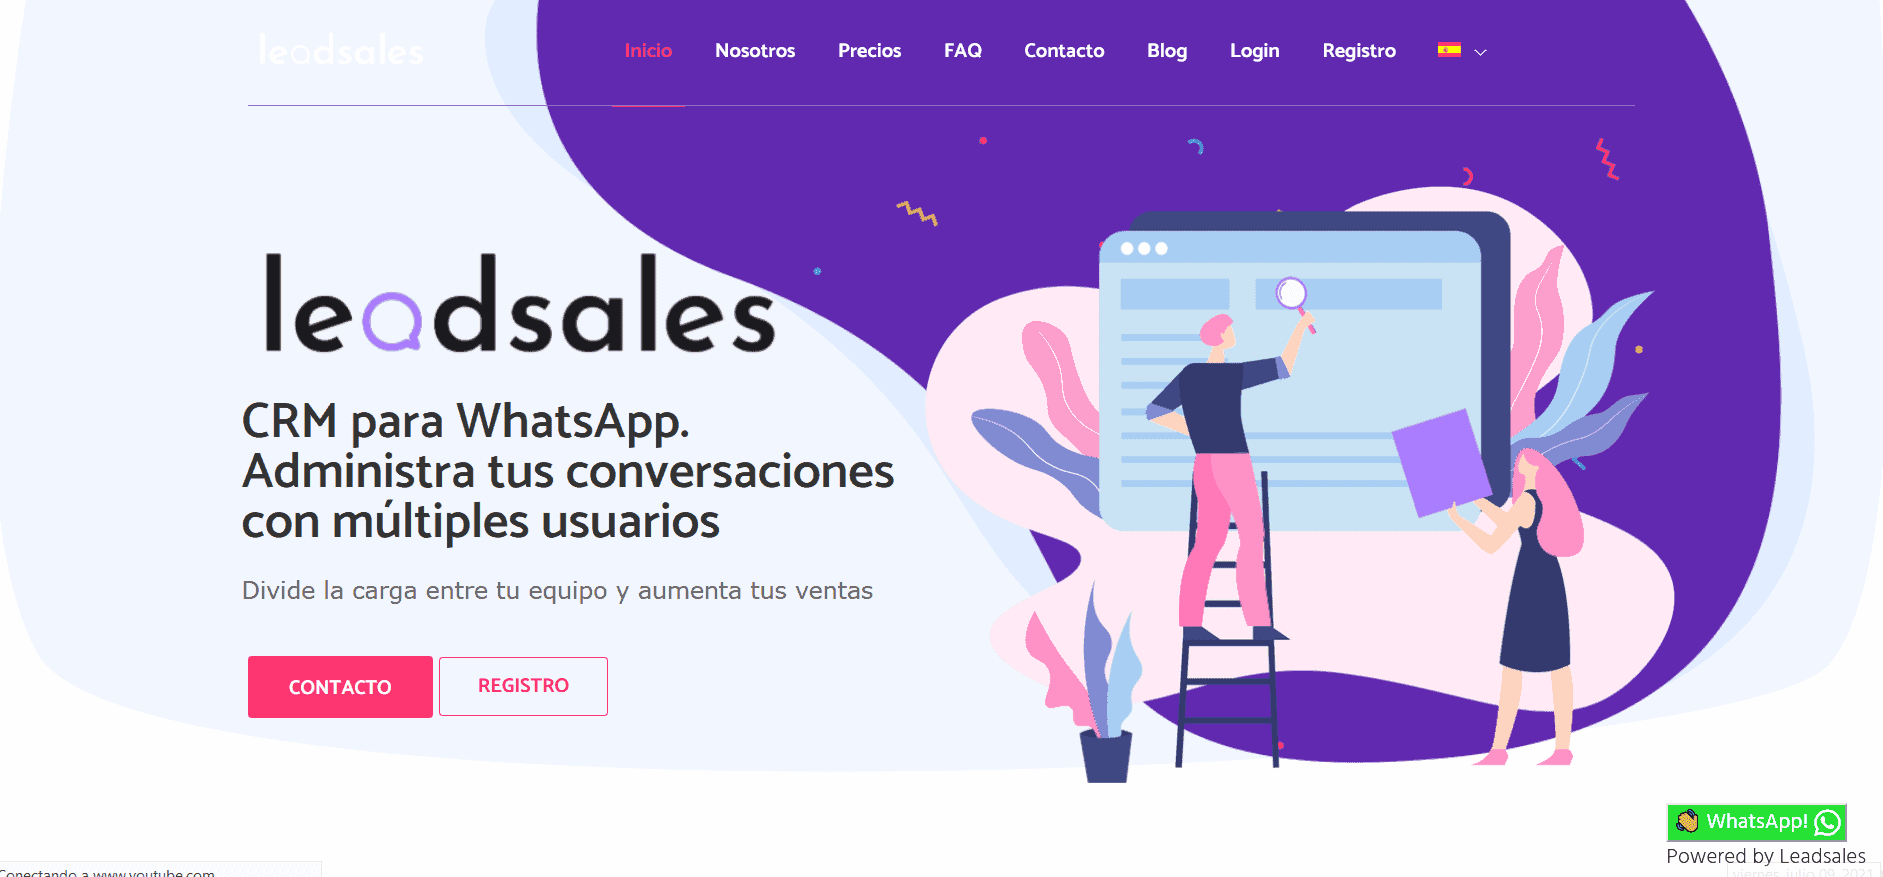 Leadsales